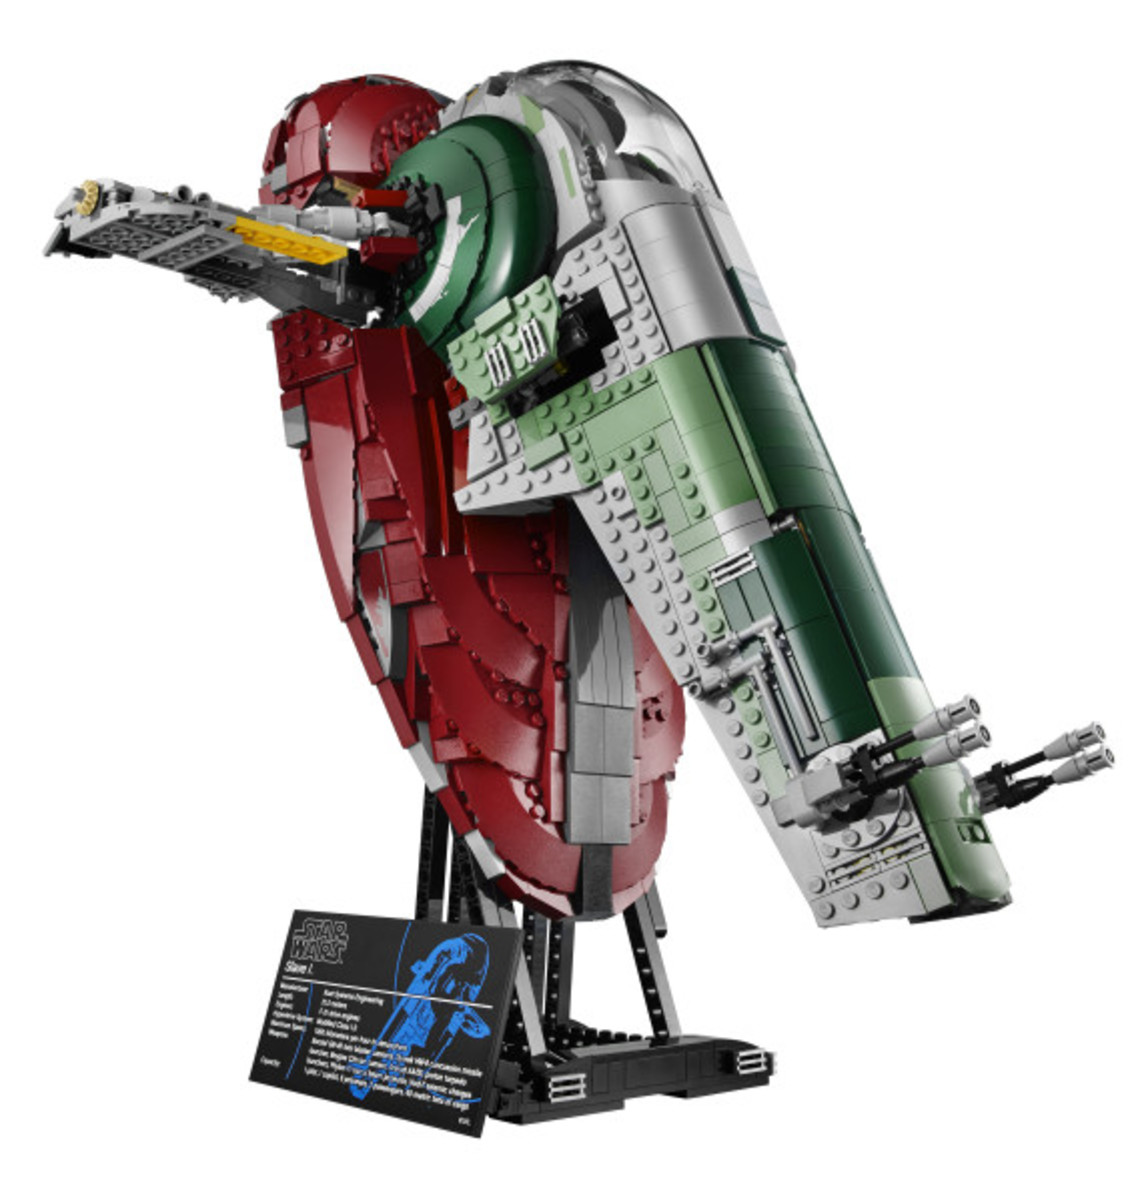 Star Wars x LEGO Ultimate Collector's Series: Boba Fett's Slave I Kit | Release Info - 20